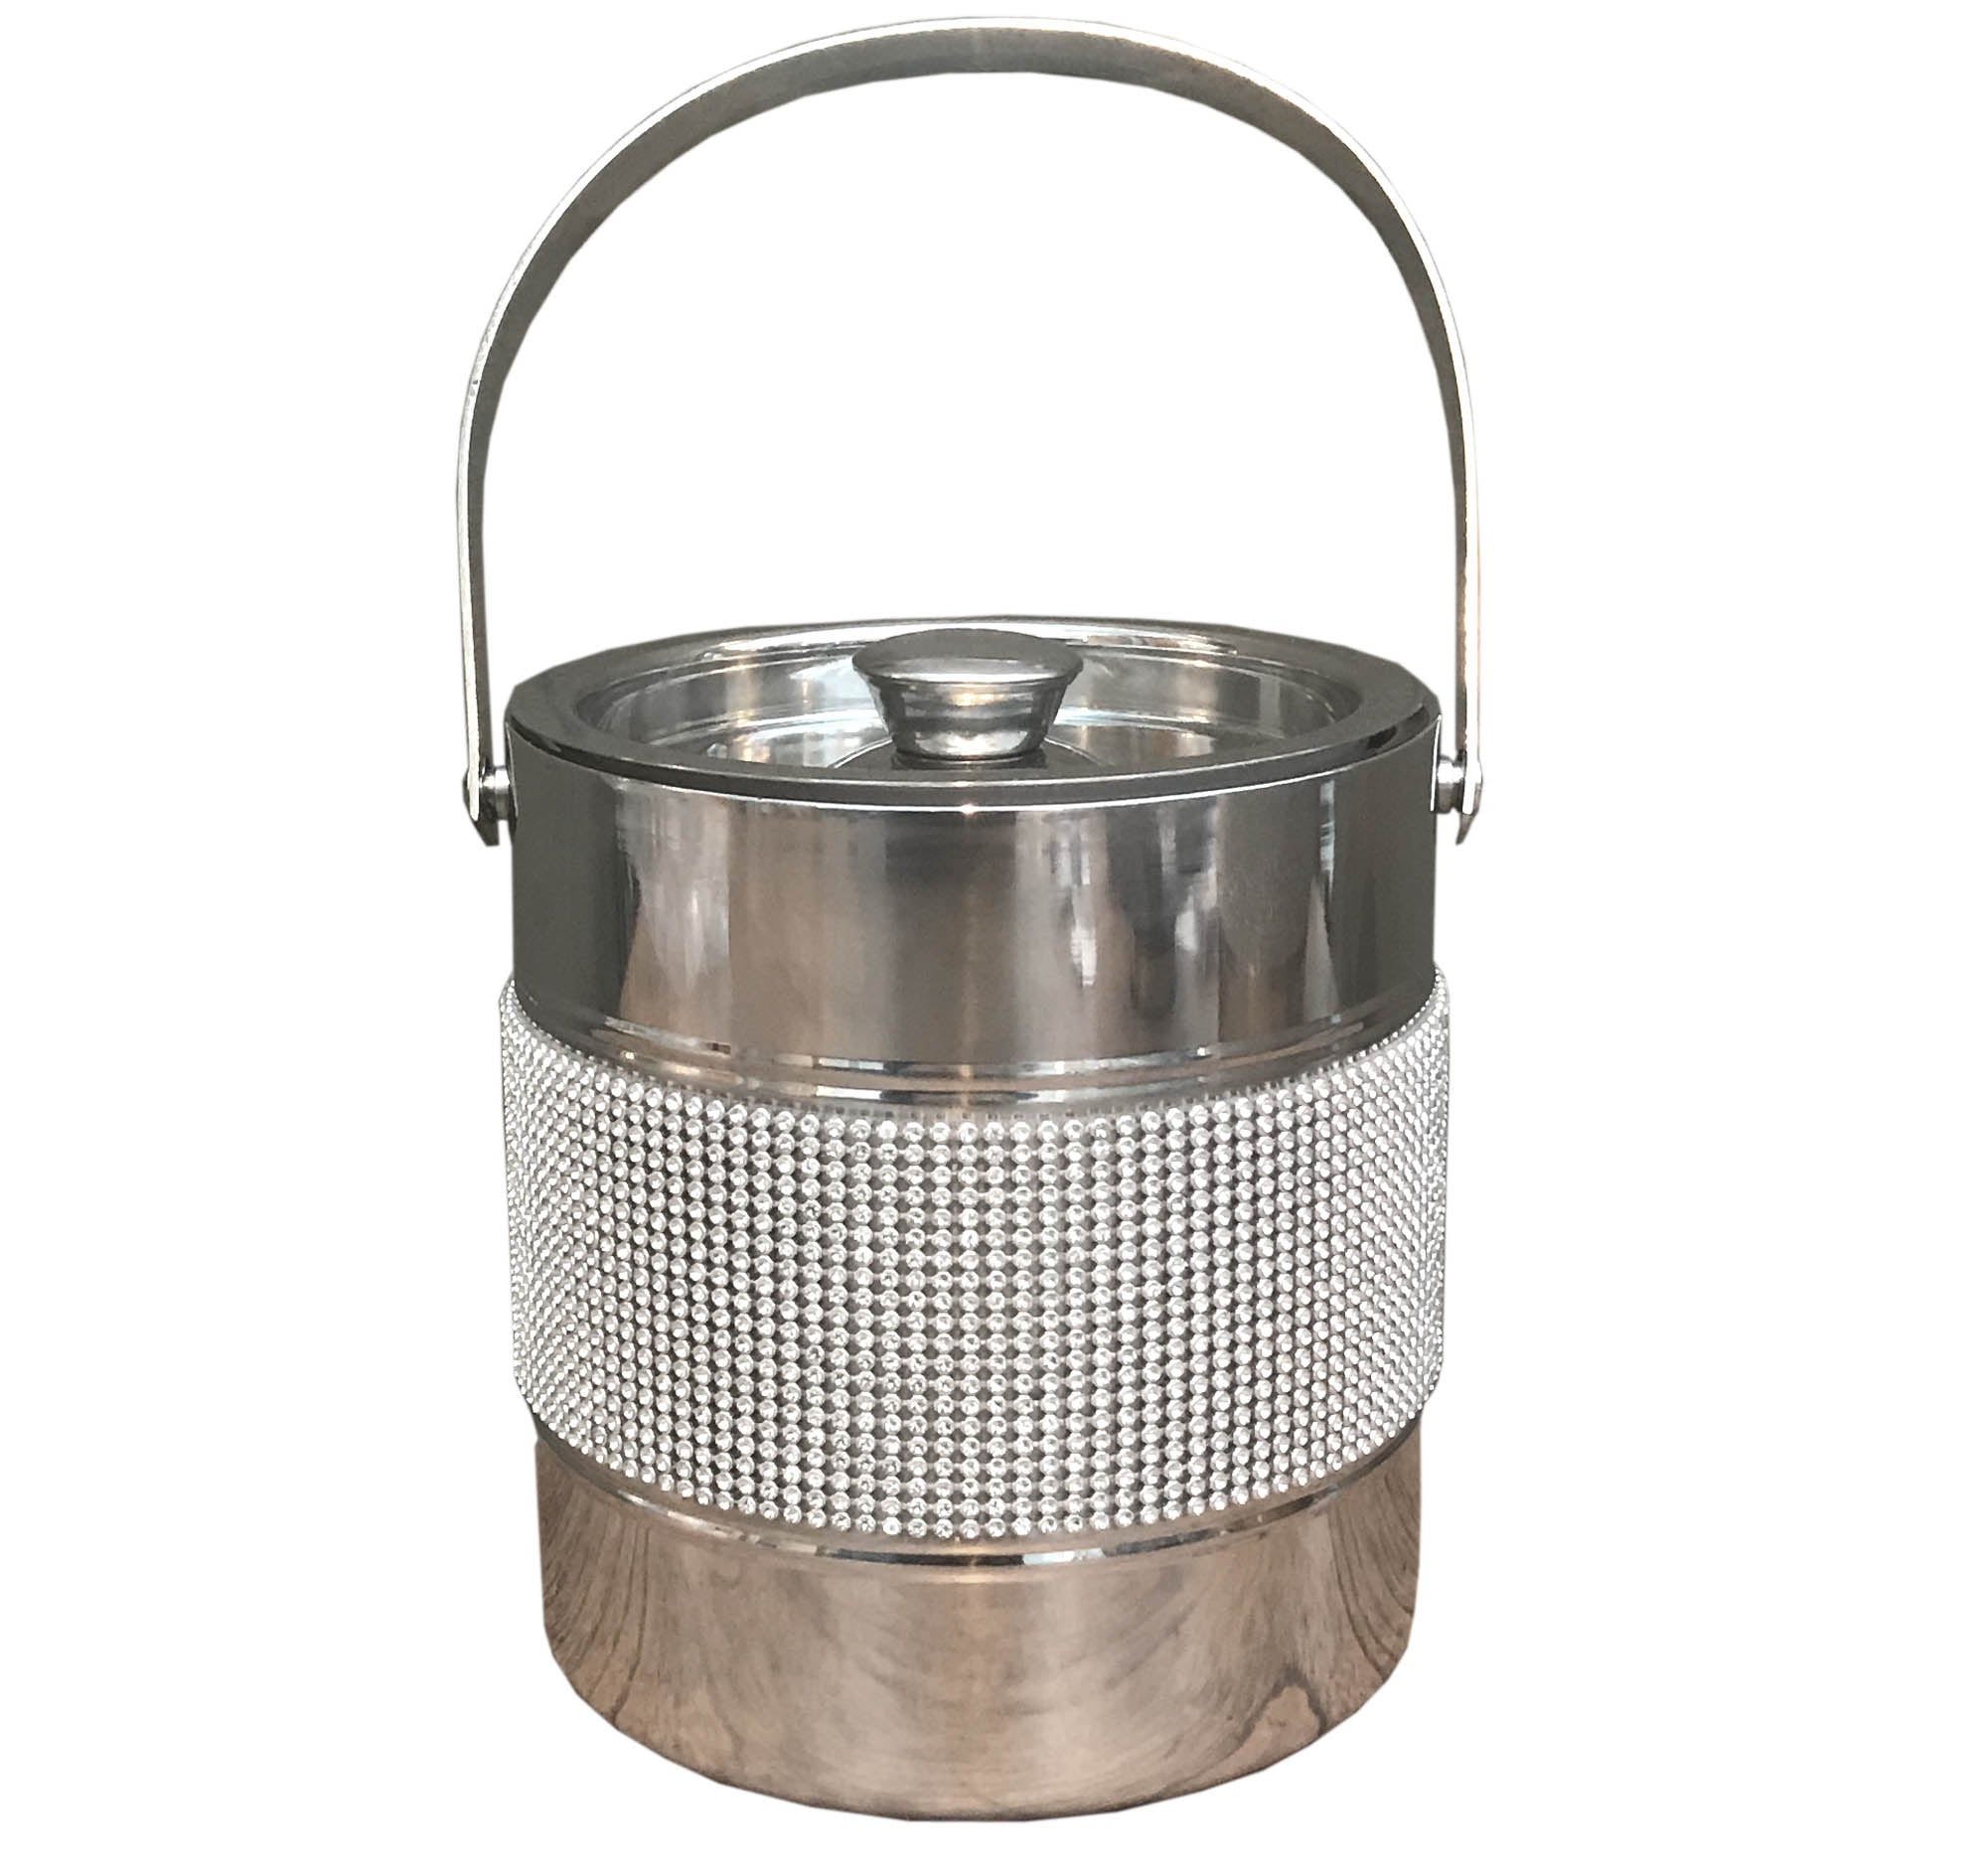 Stainless Steel Jewelled Ice Bucket W/ Handle, Ice Bins by Low Cost Gifts